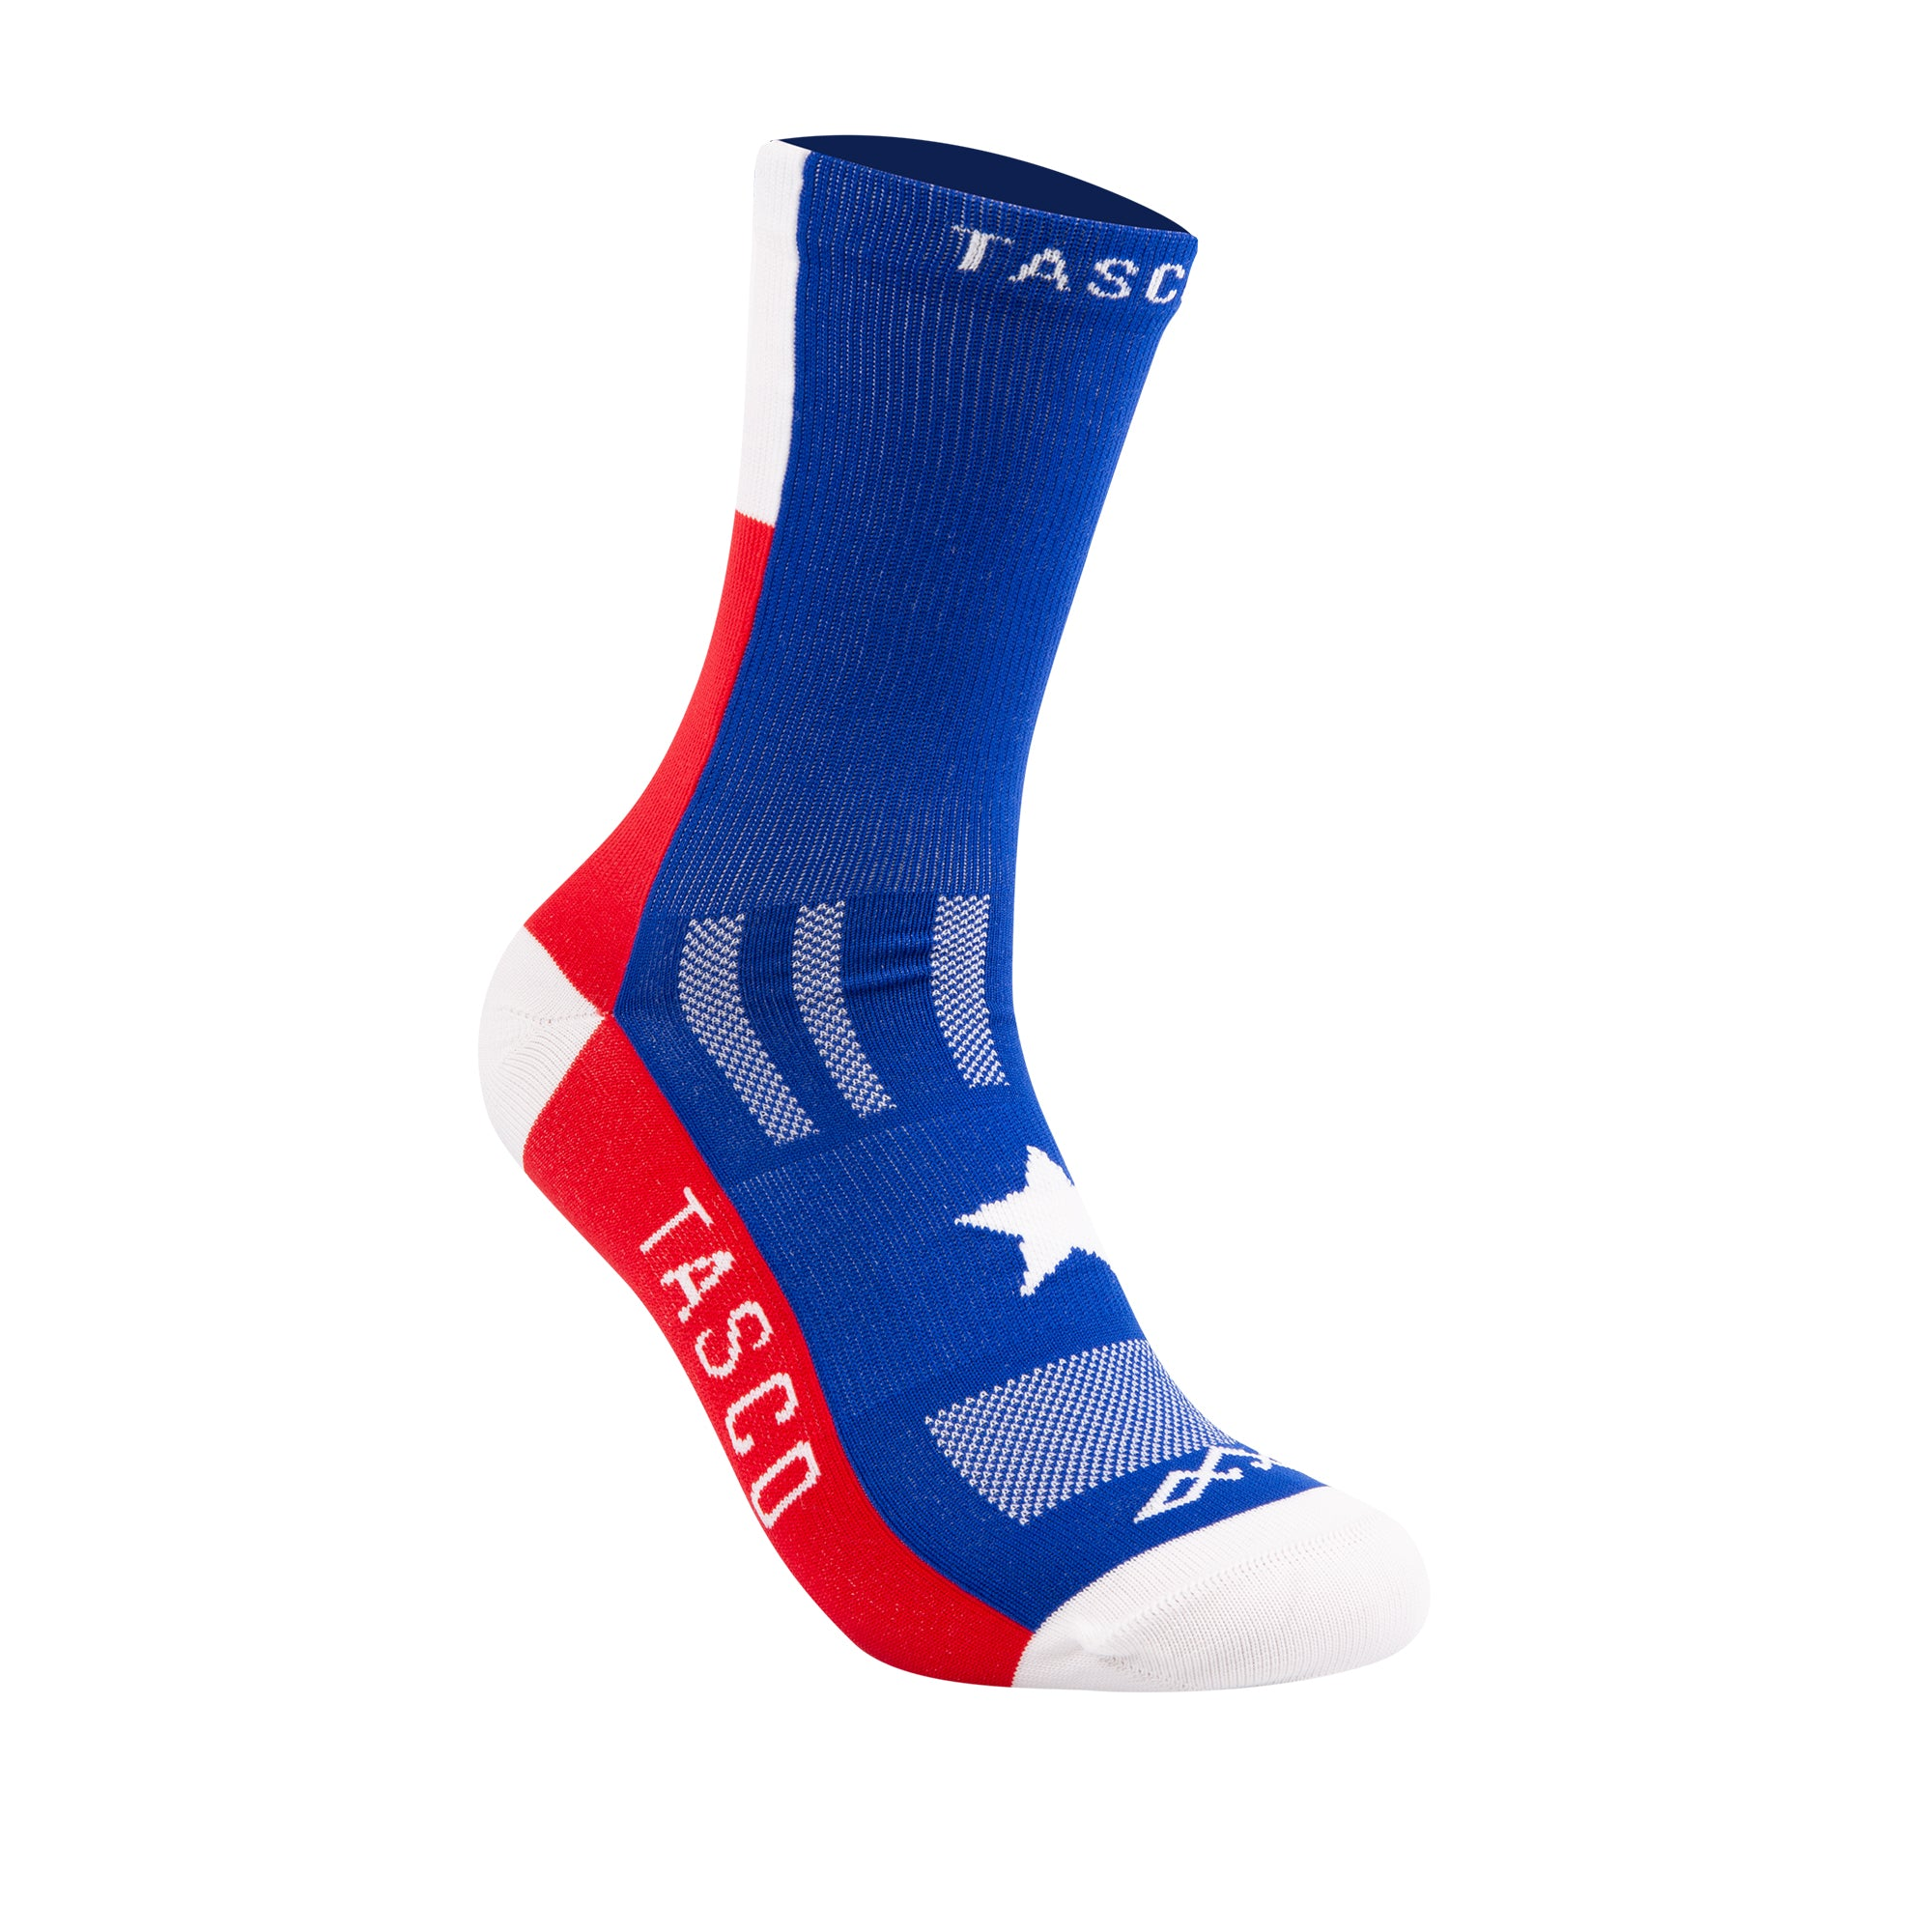 Longhorn Double Digits MTB Socks - MTB Lifestyle | TASCO MTB